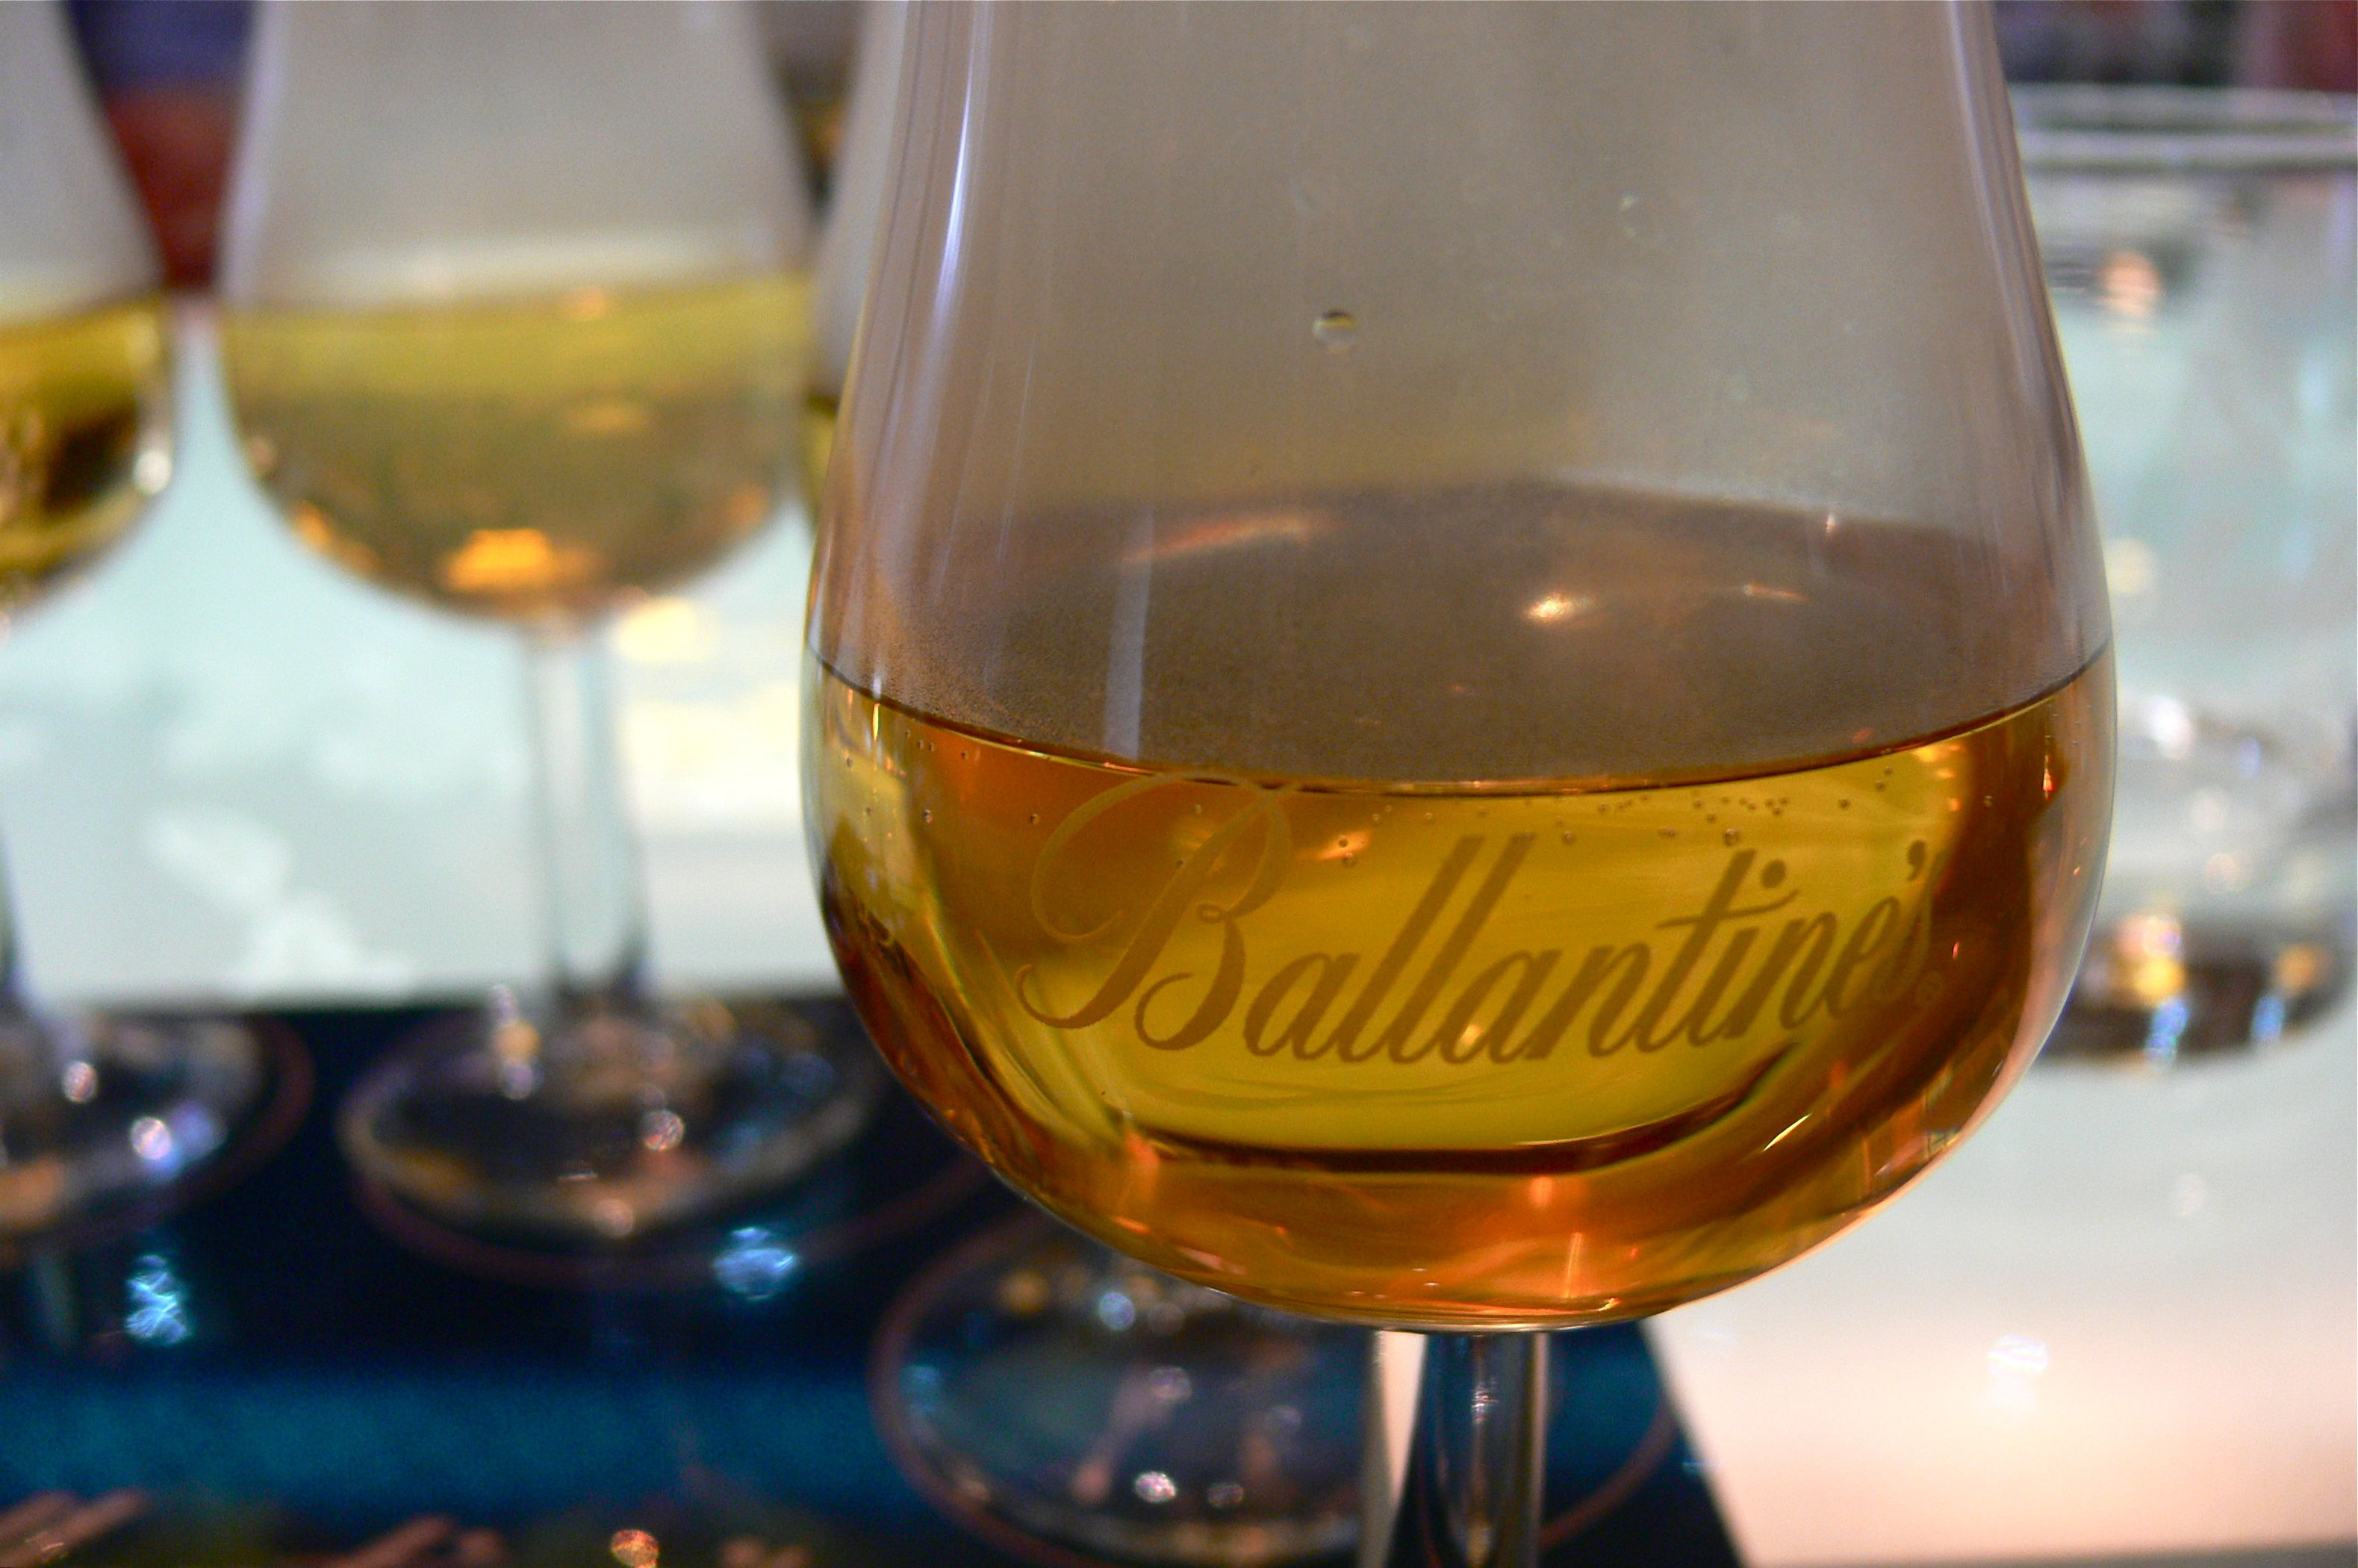 Ballantine's in a glass at Glenburgie distillery